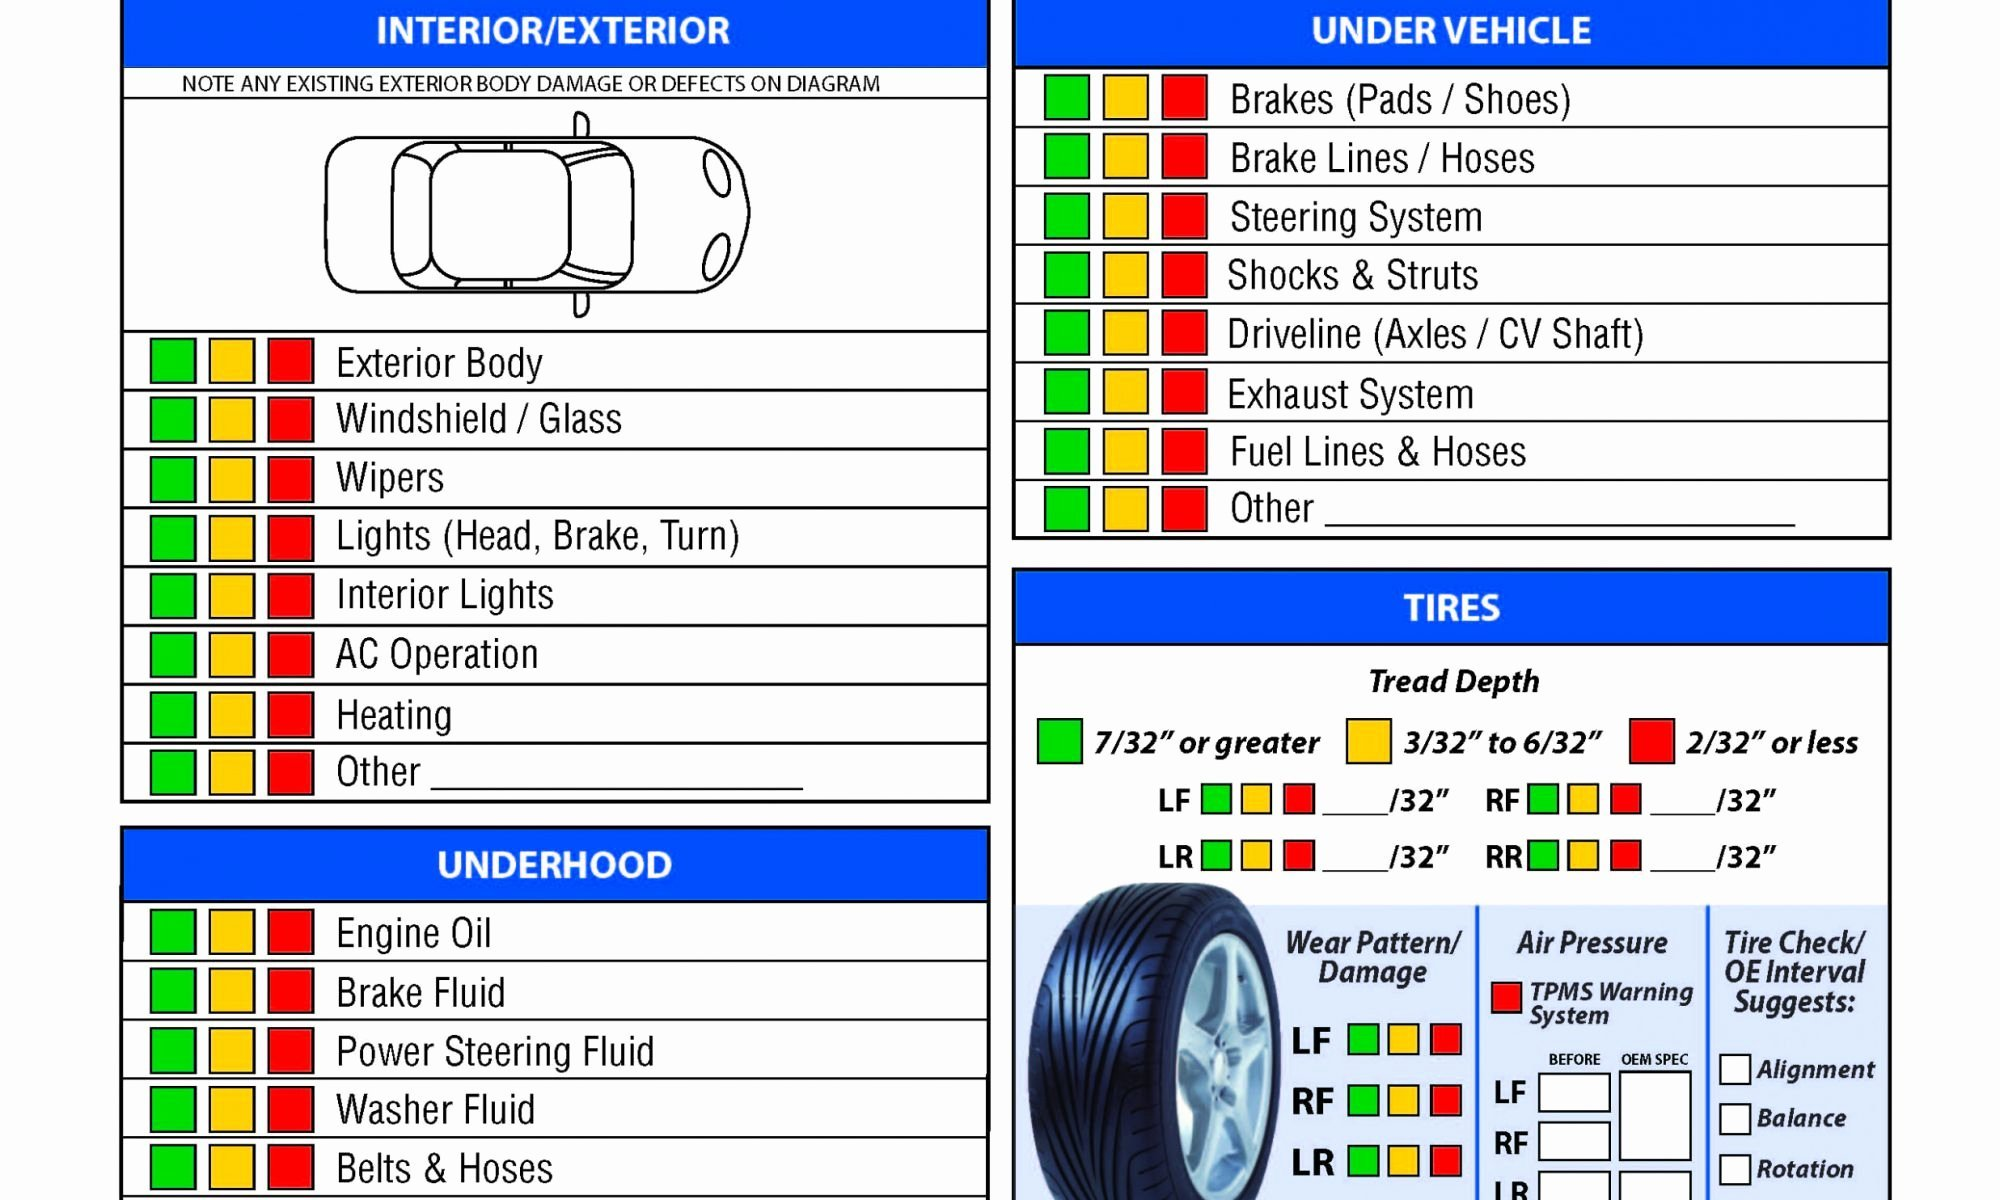 Vehicle Inspection Report Template Free Spreadsheet form